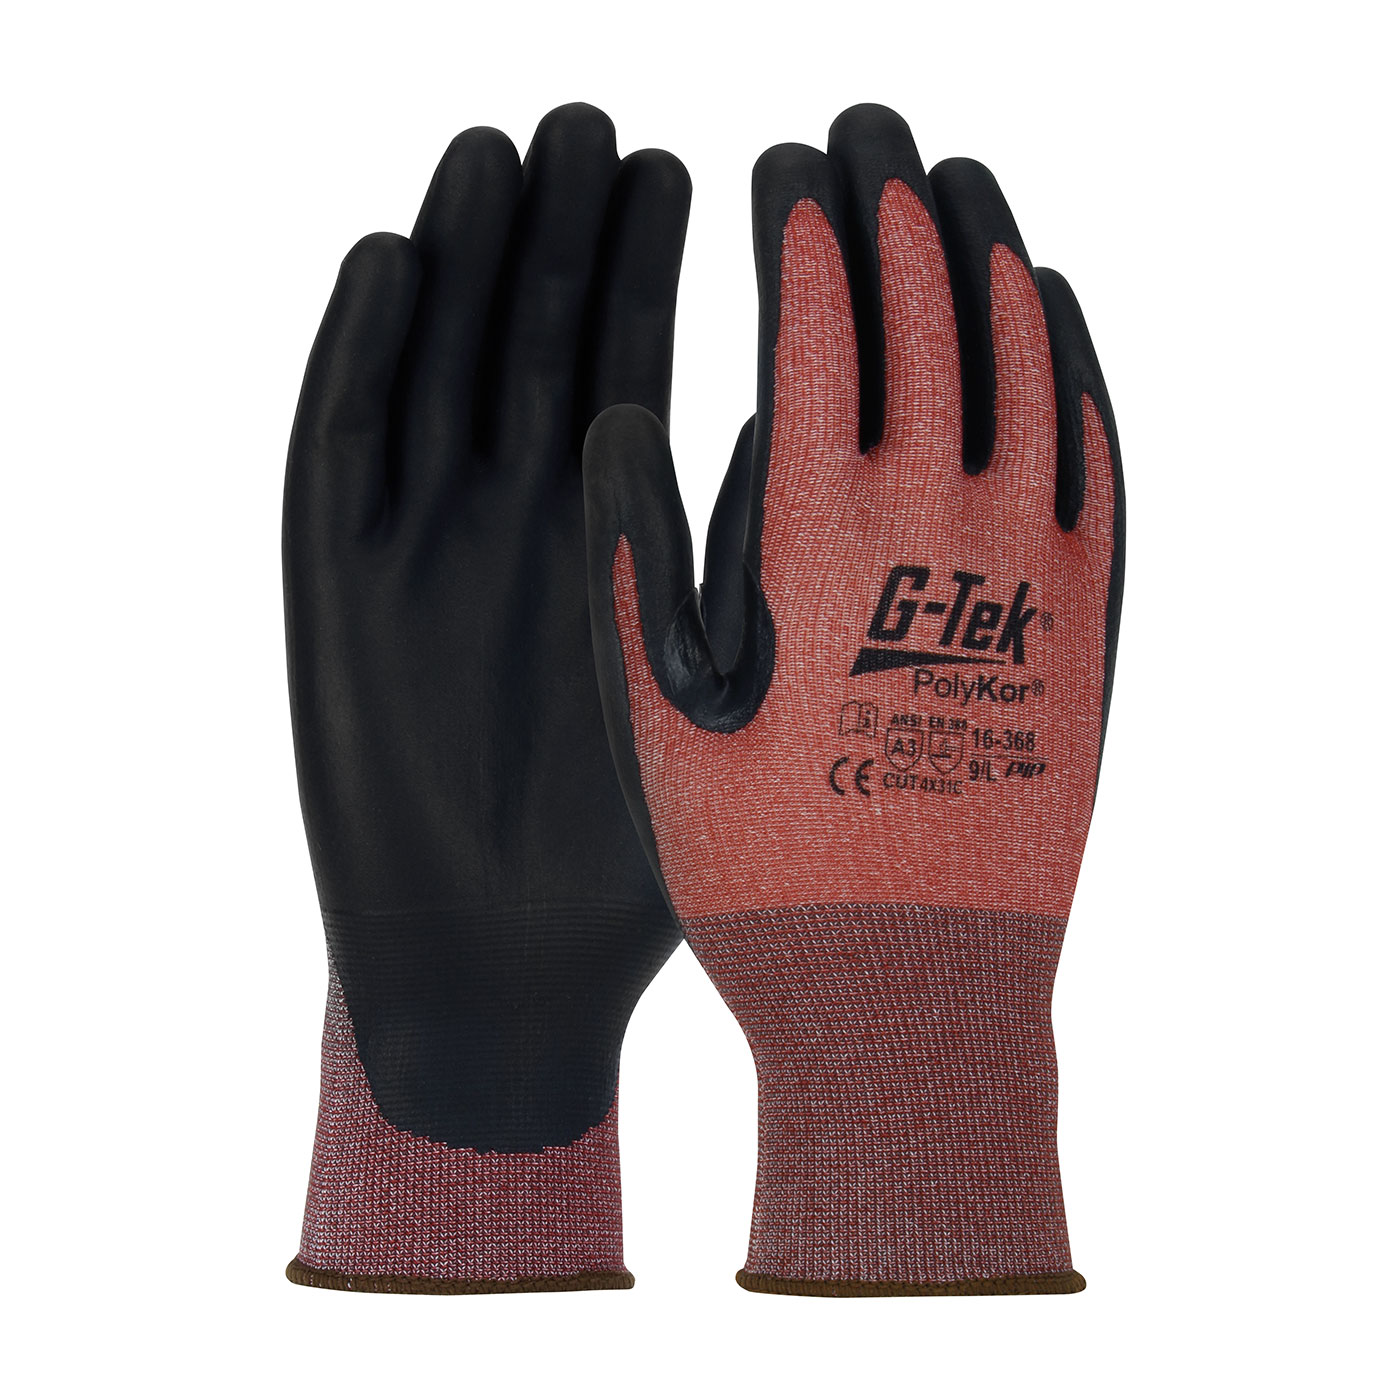 PIP G-Tek® PolyKor® X7™ Seamless Knit PolyKor® X7™ Blended Glove with NeoFoam® Coated Palm & Fingers - Touchscreen Compatible #16-368